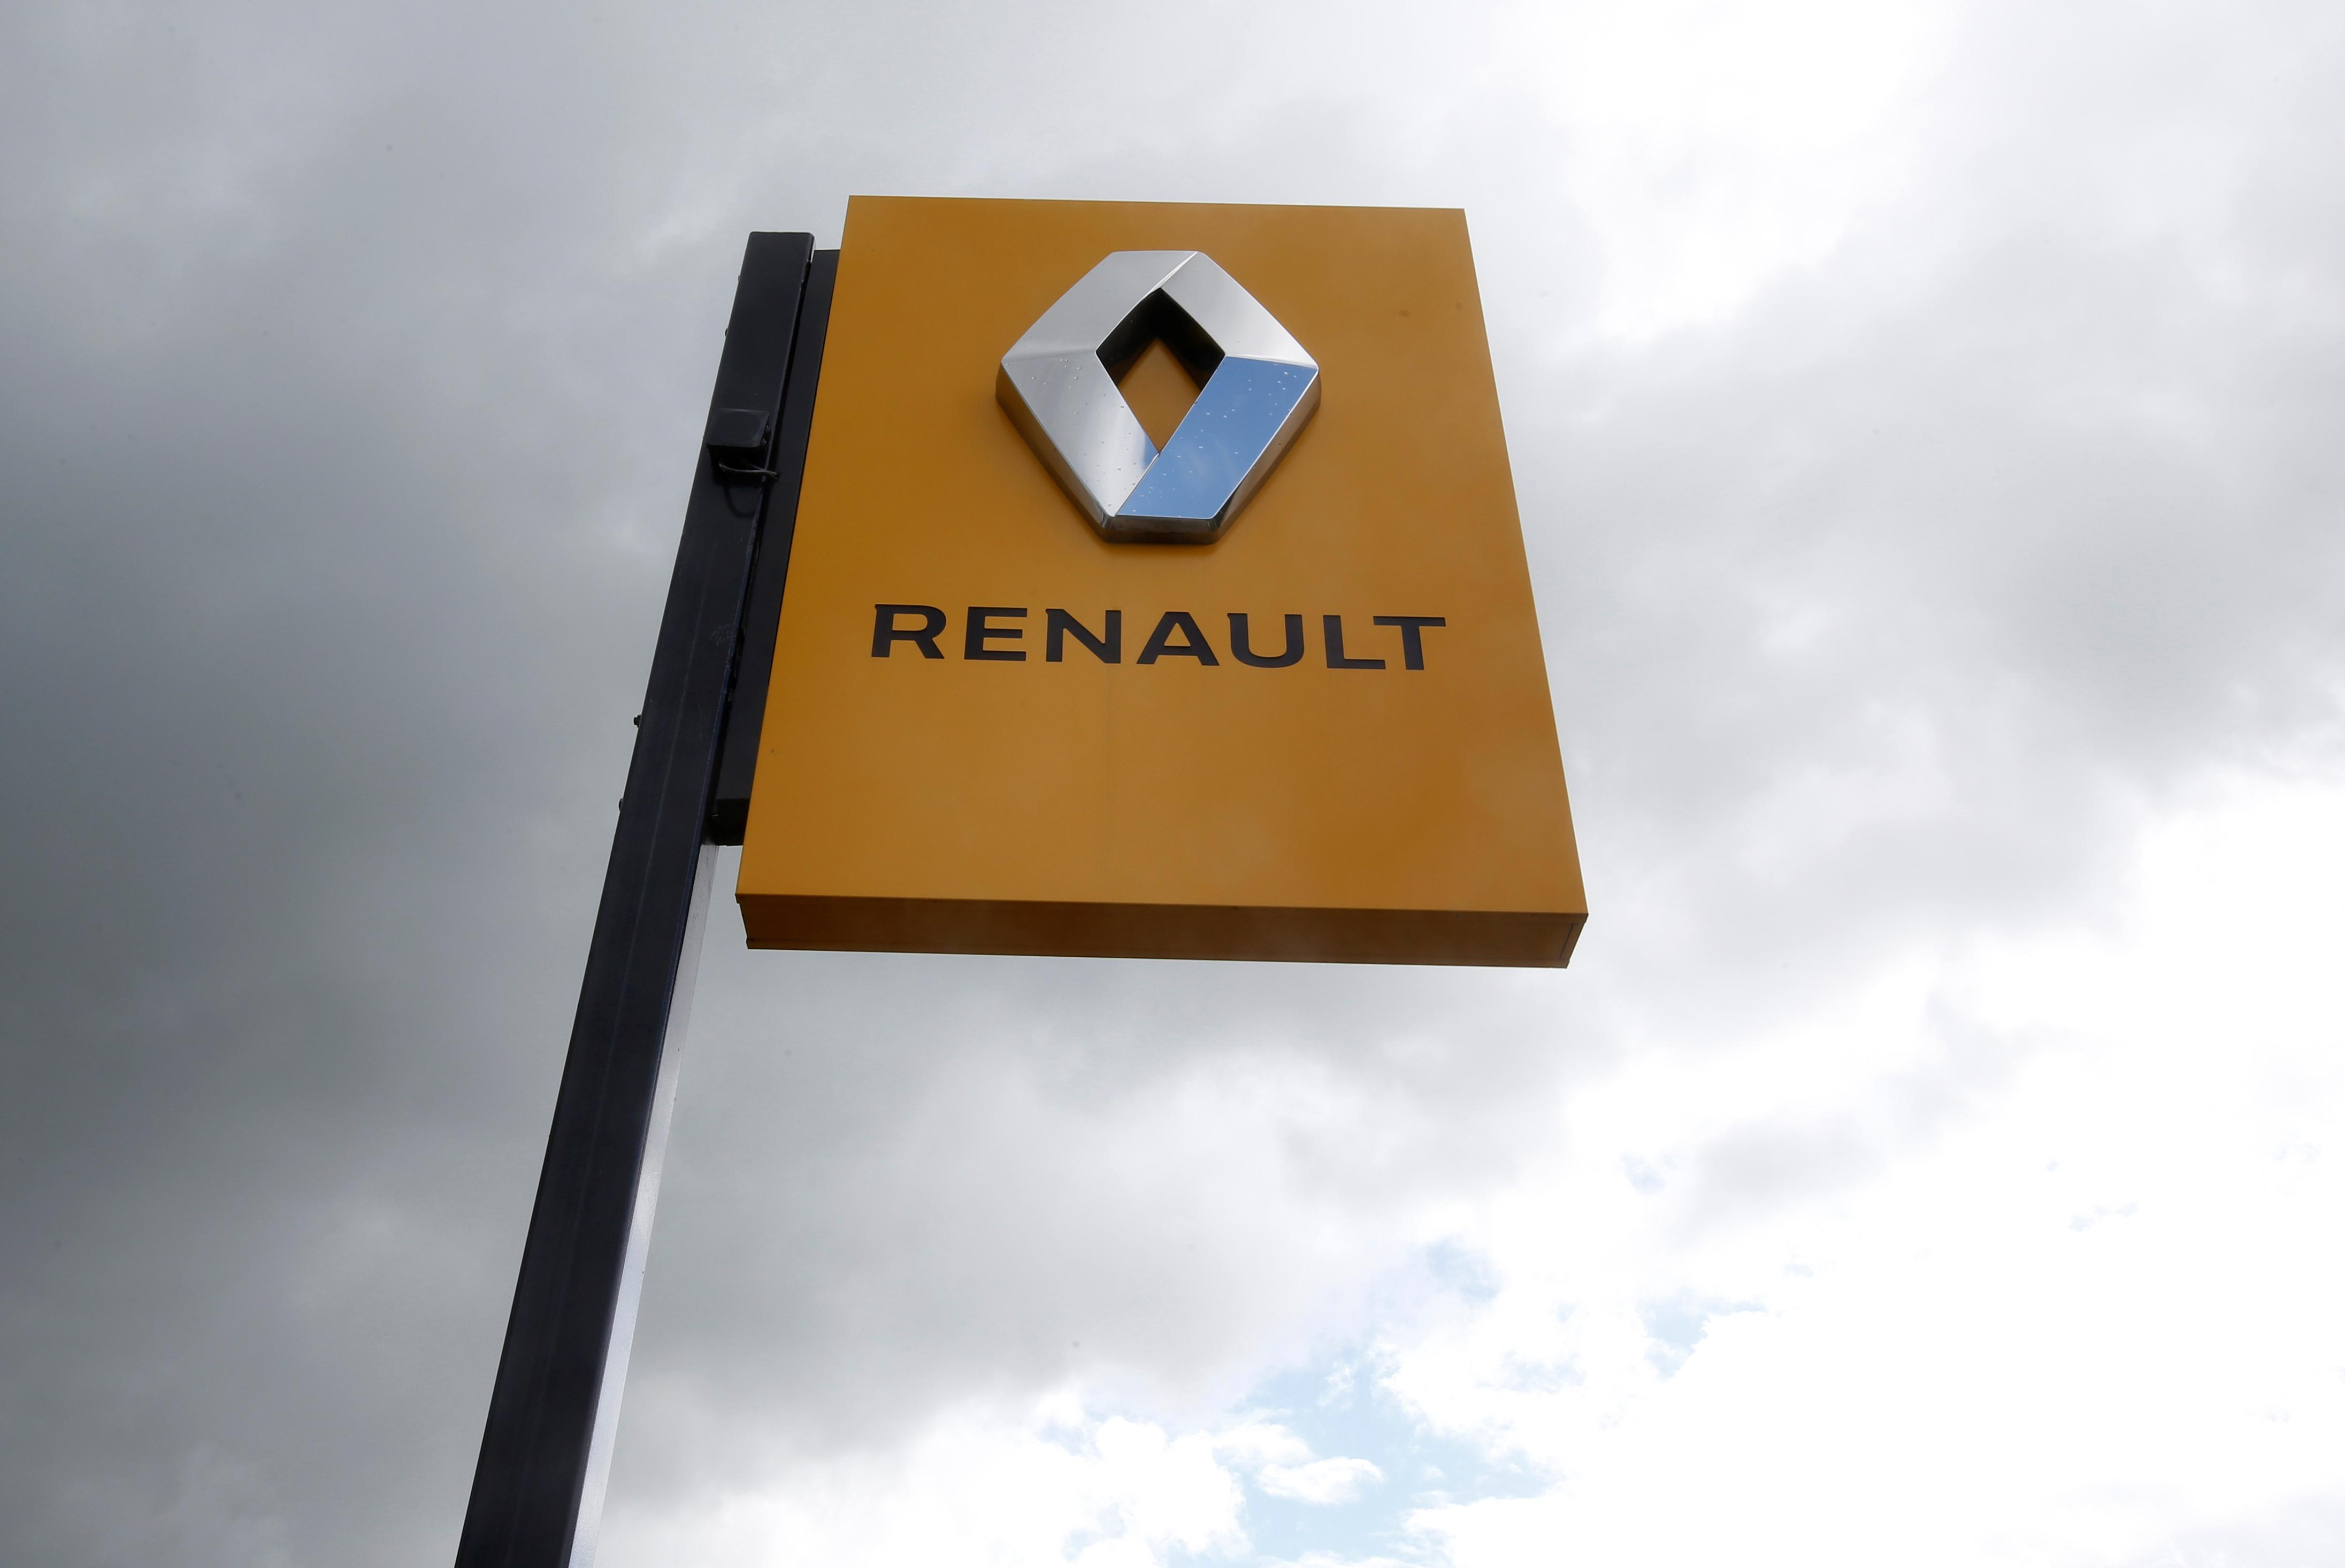 Renault will vote to back Nissan's move to give it boardroom seats